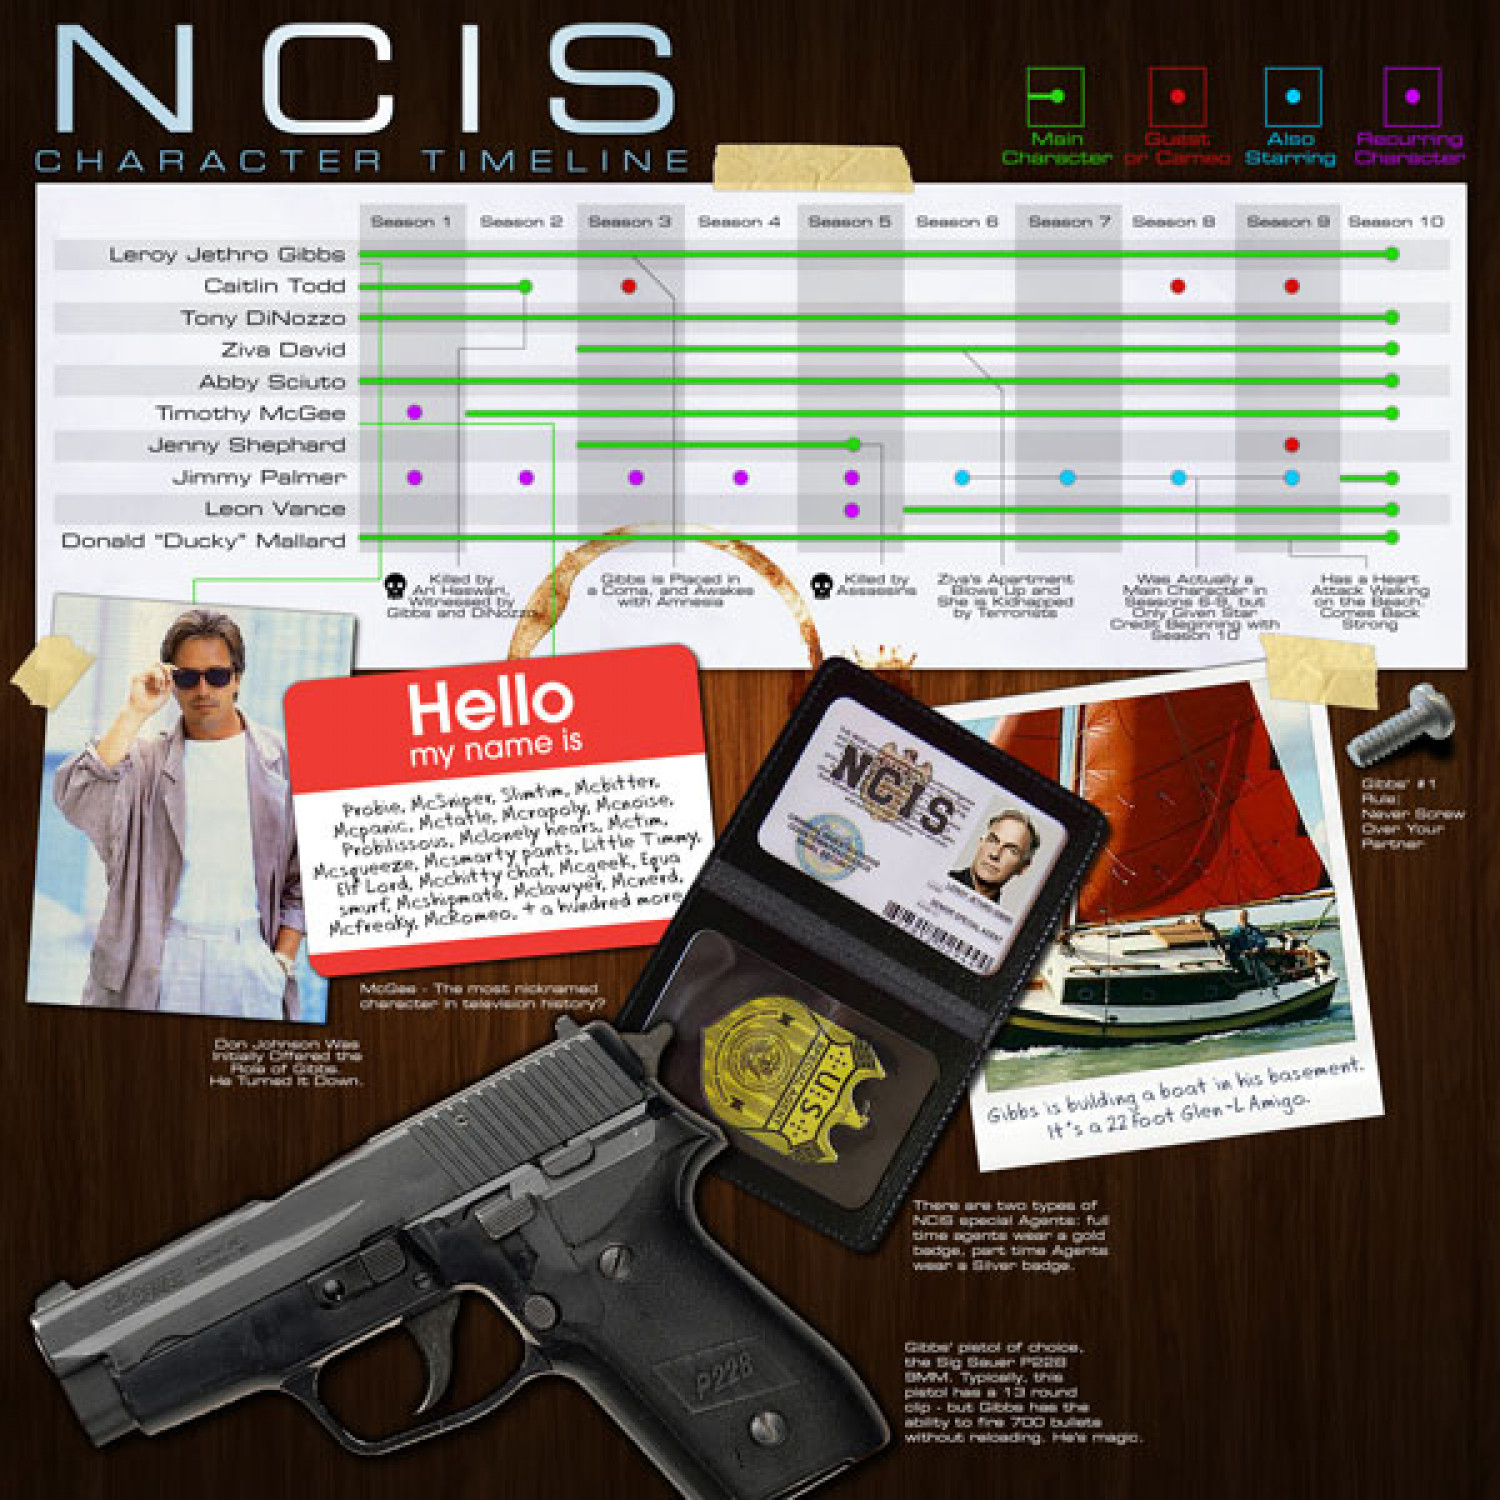 NCIS Timeline Infographic